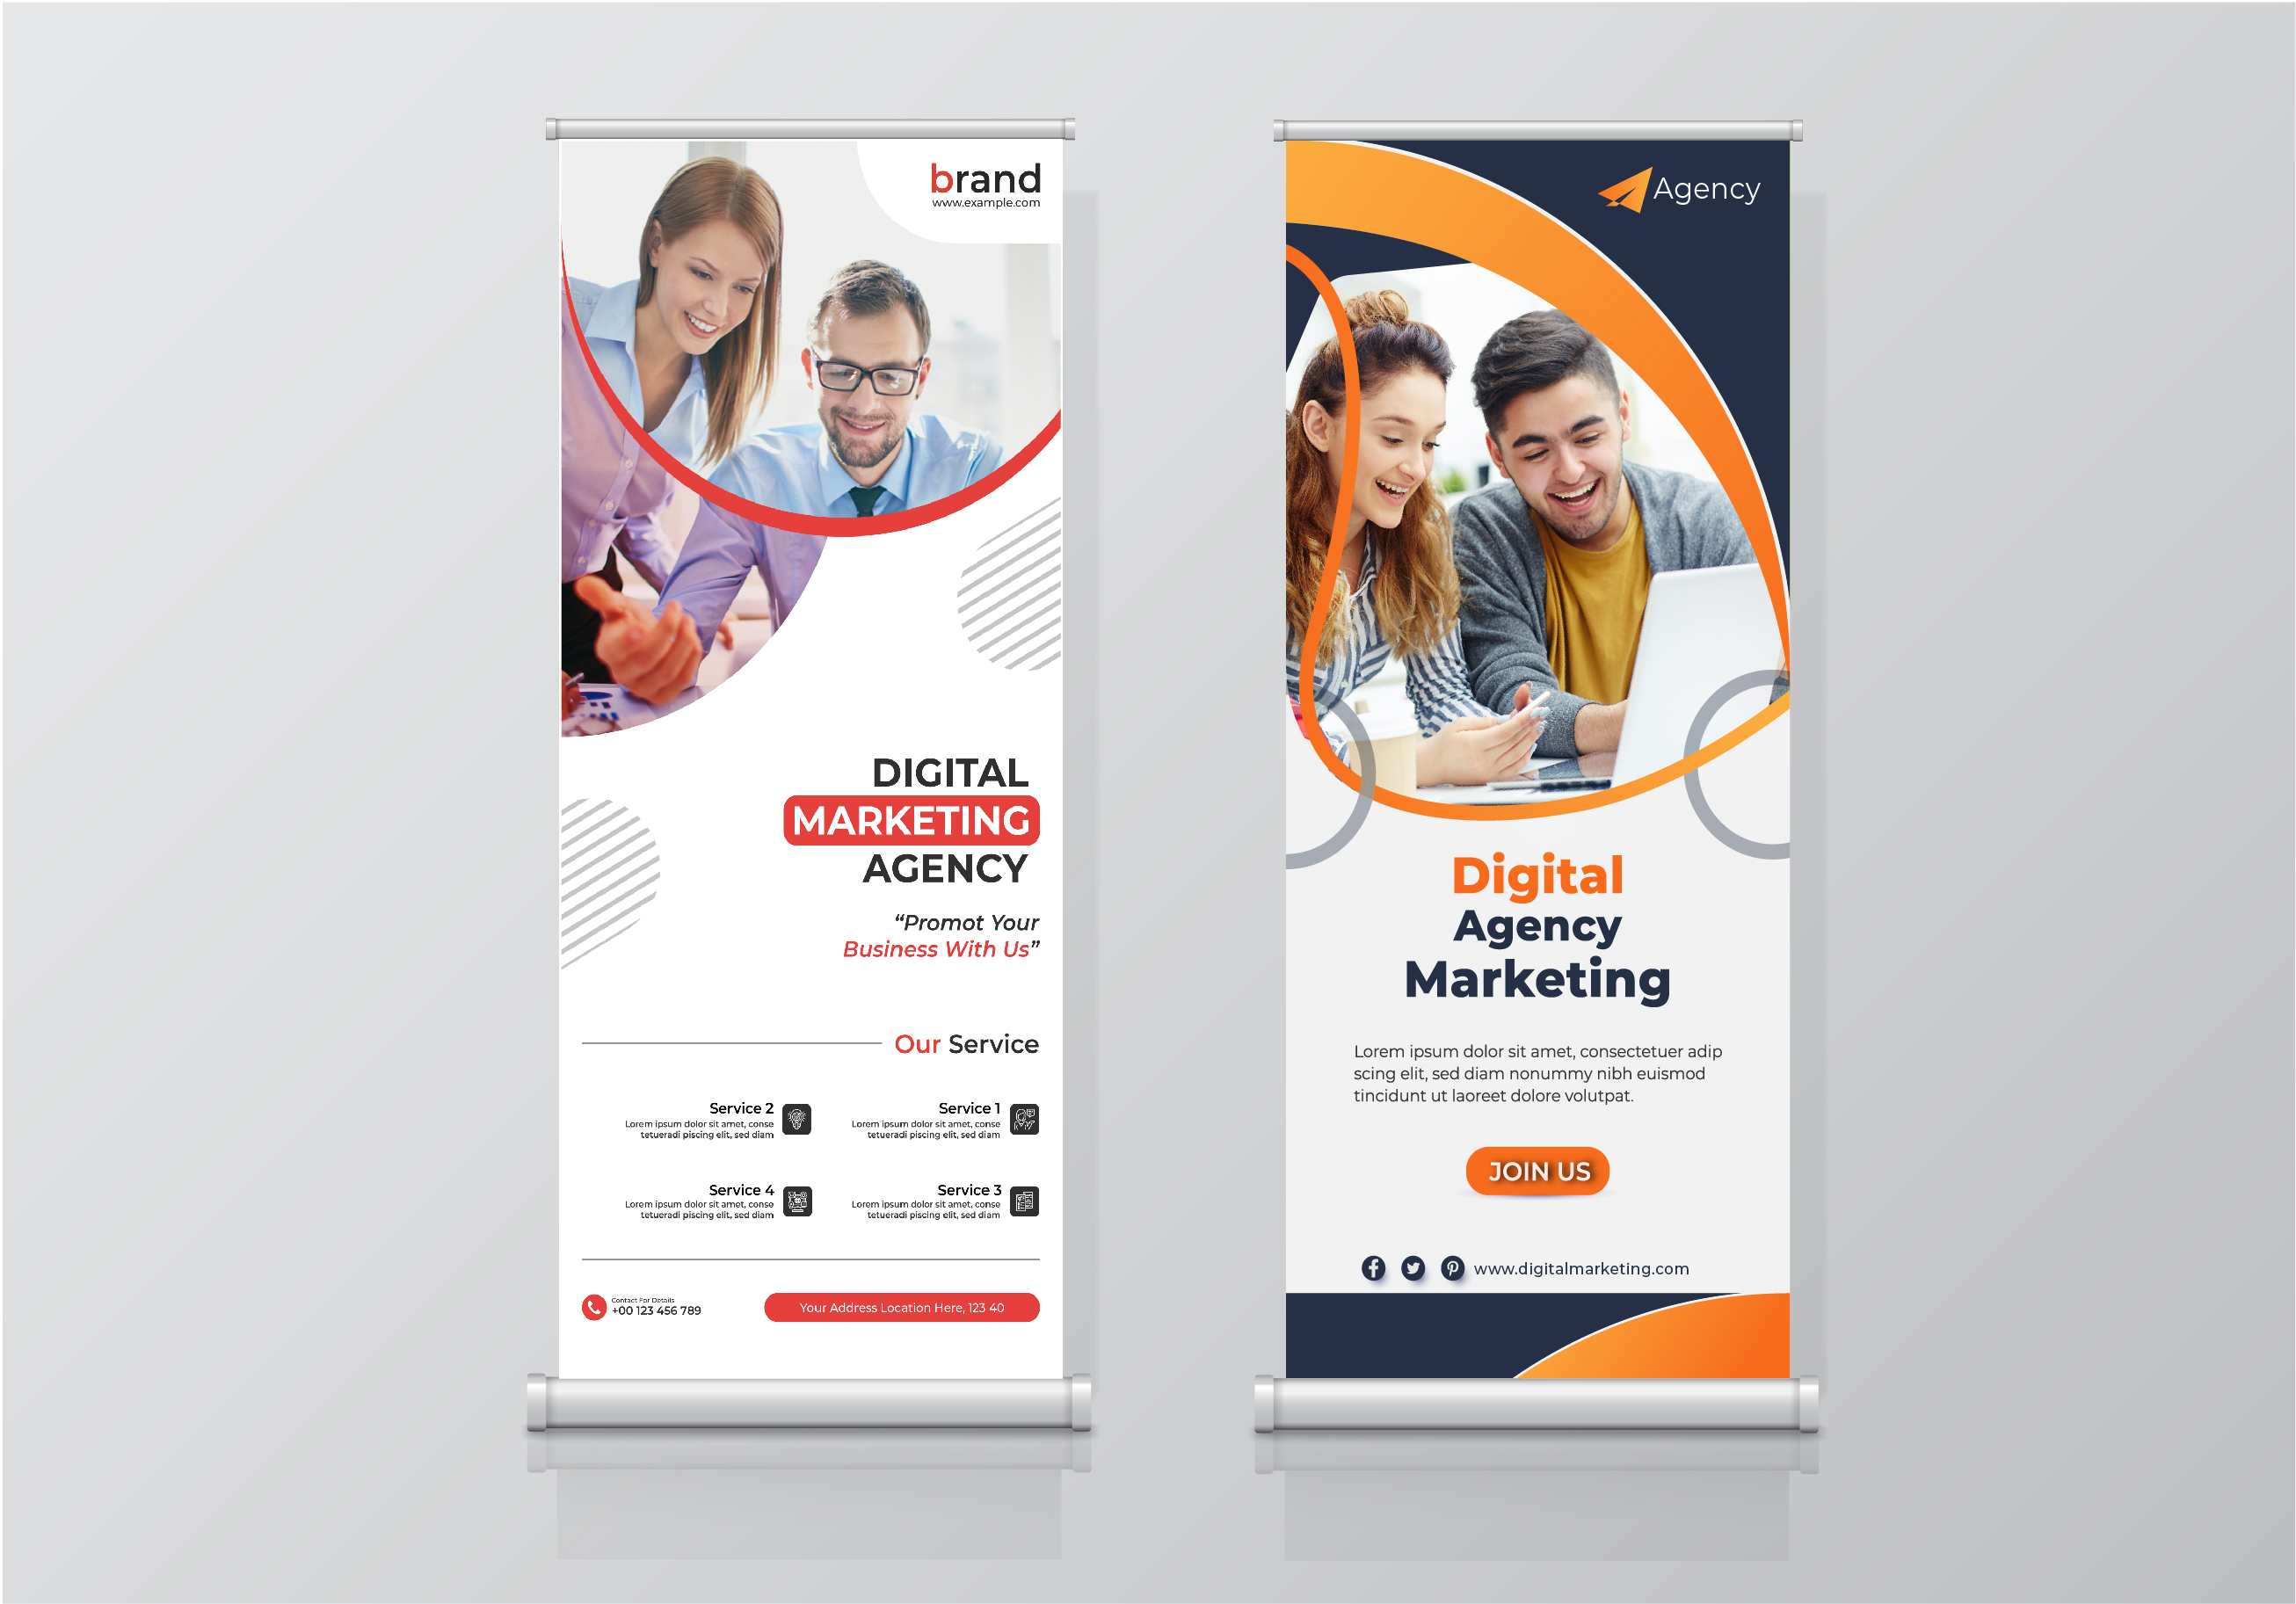 I will creative 10 pro awesome Roll-up banner and social media post design with in 24 hour service